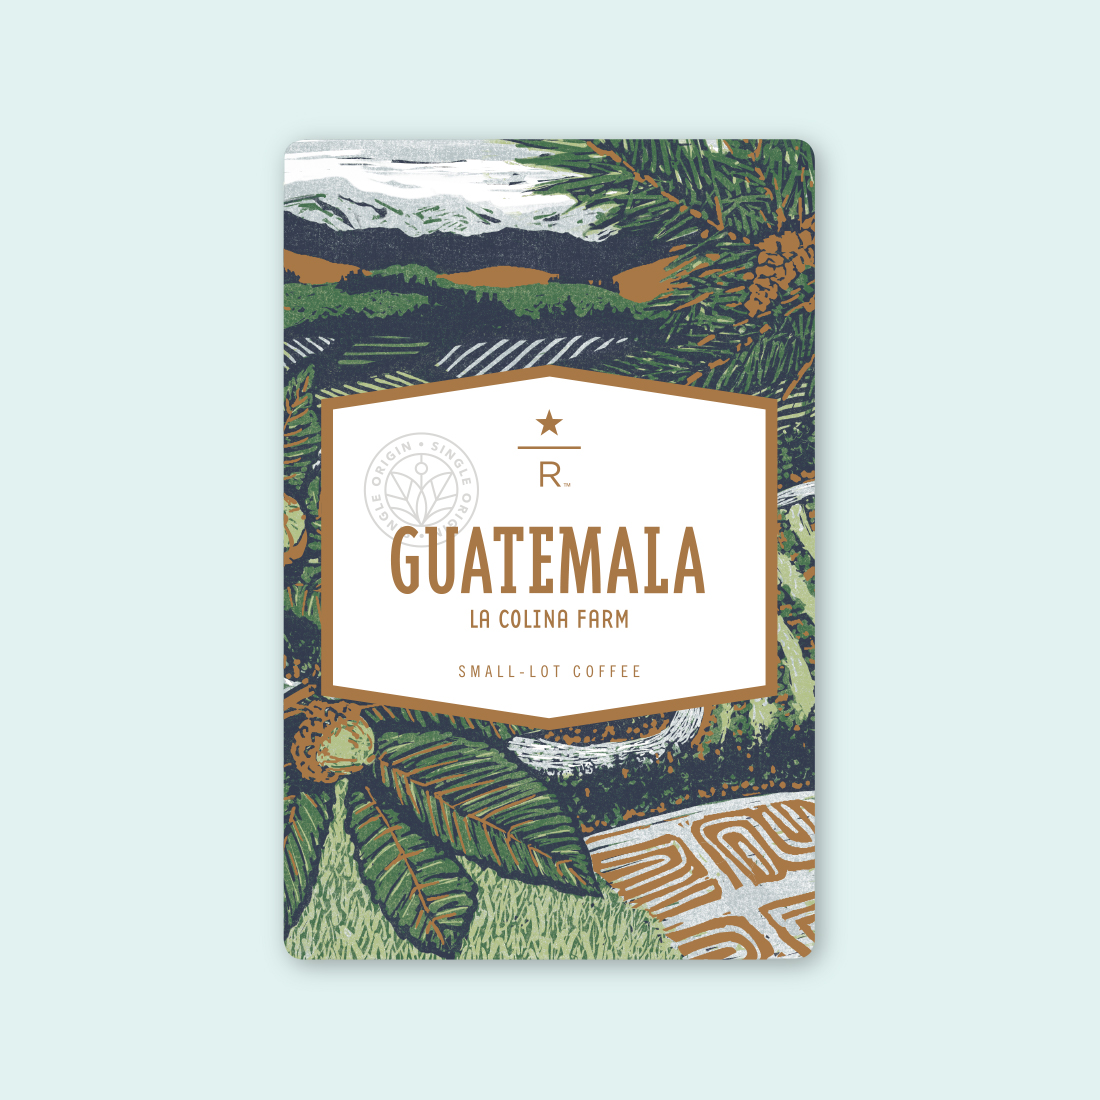 Coffee card illustration for GUATEMALA LA COLINA FARM